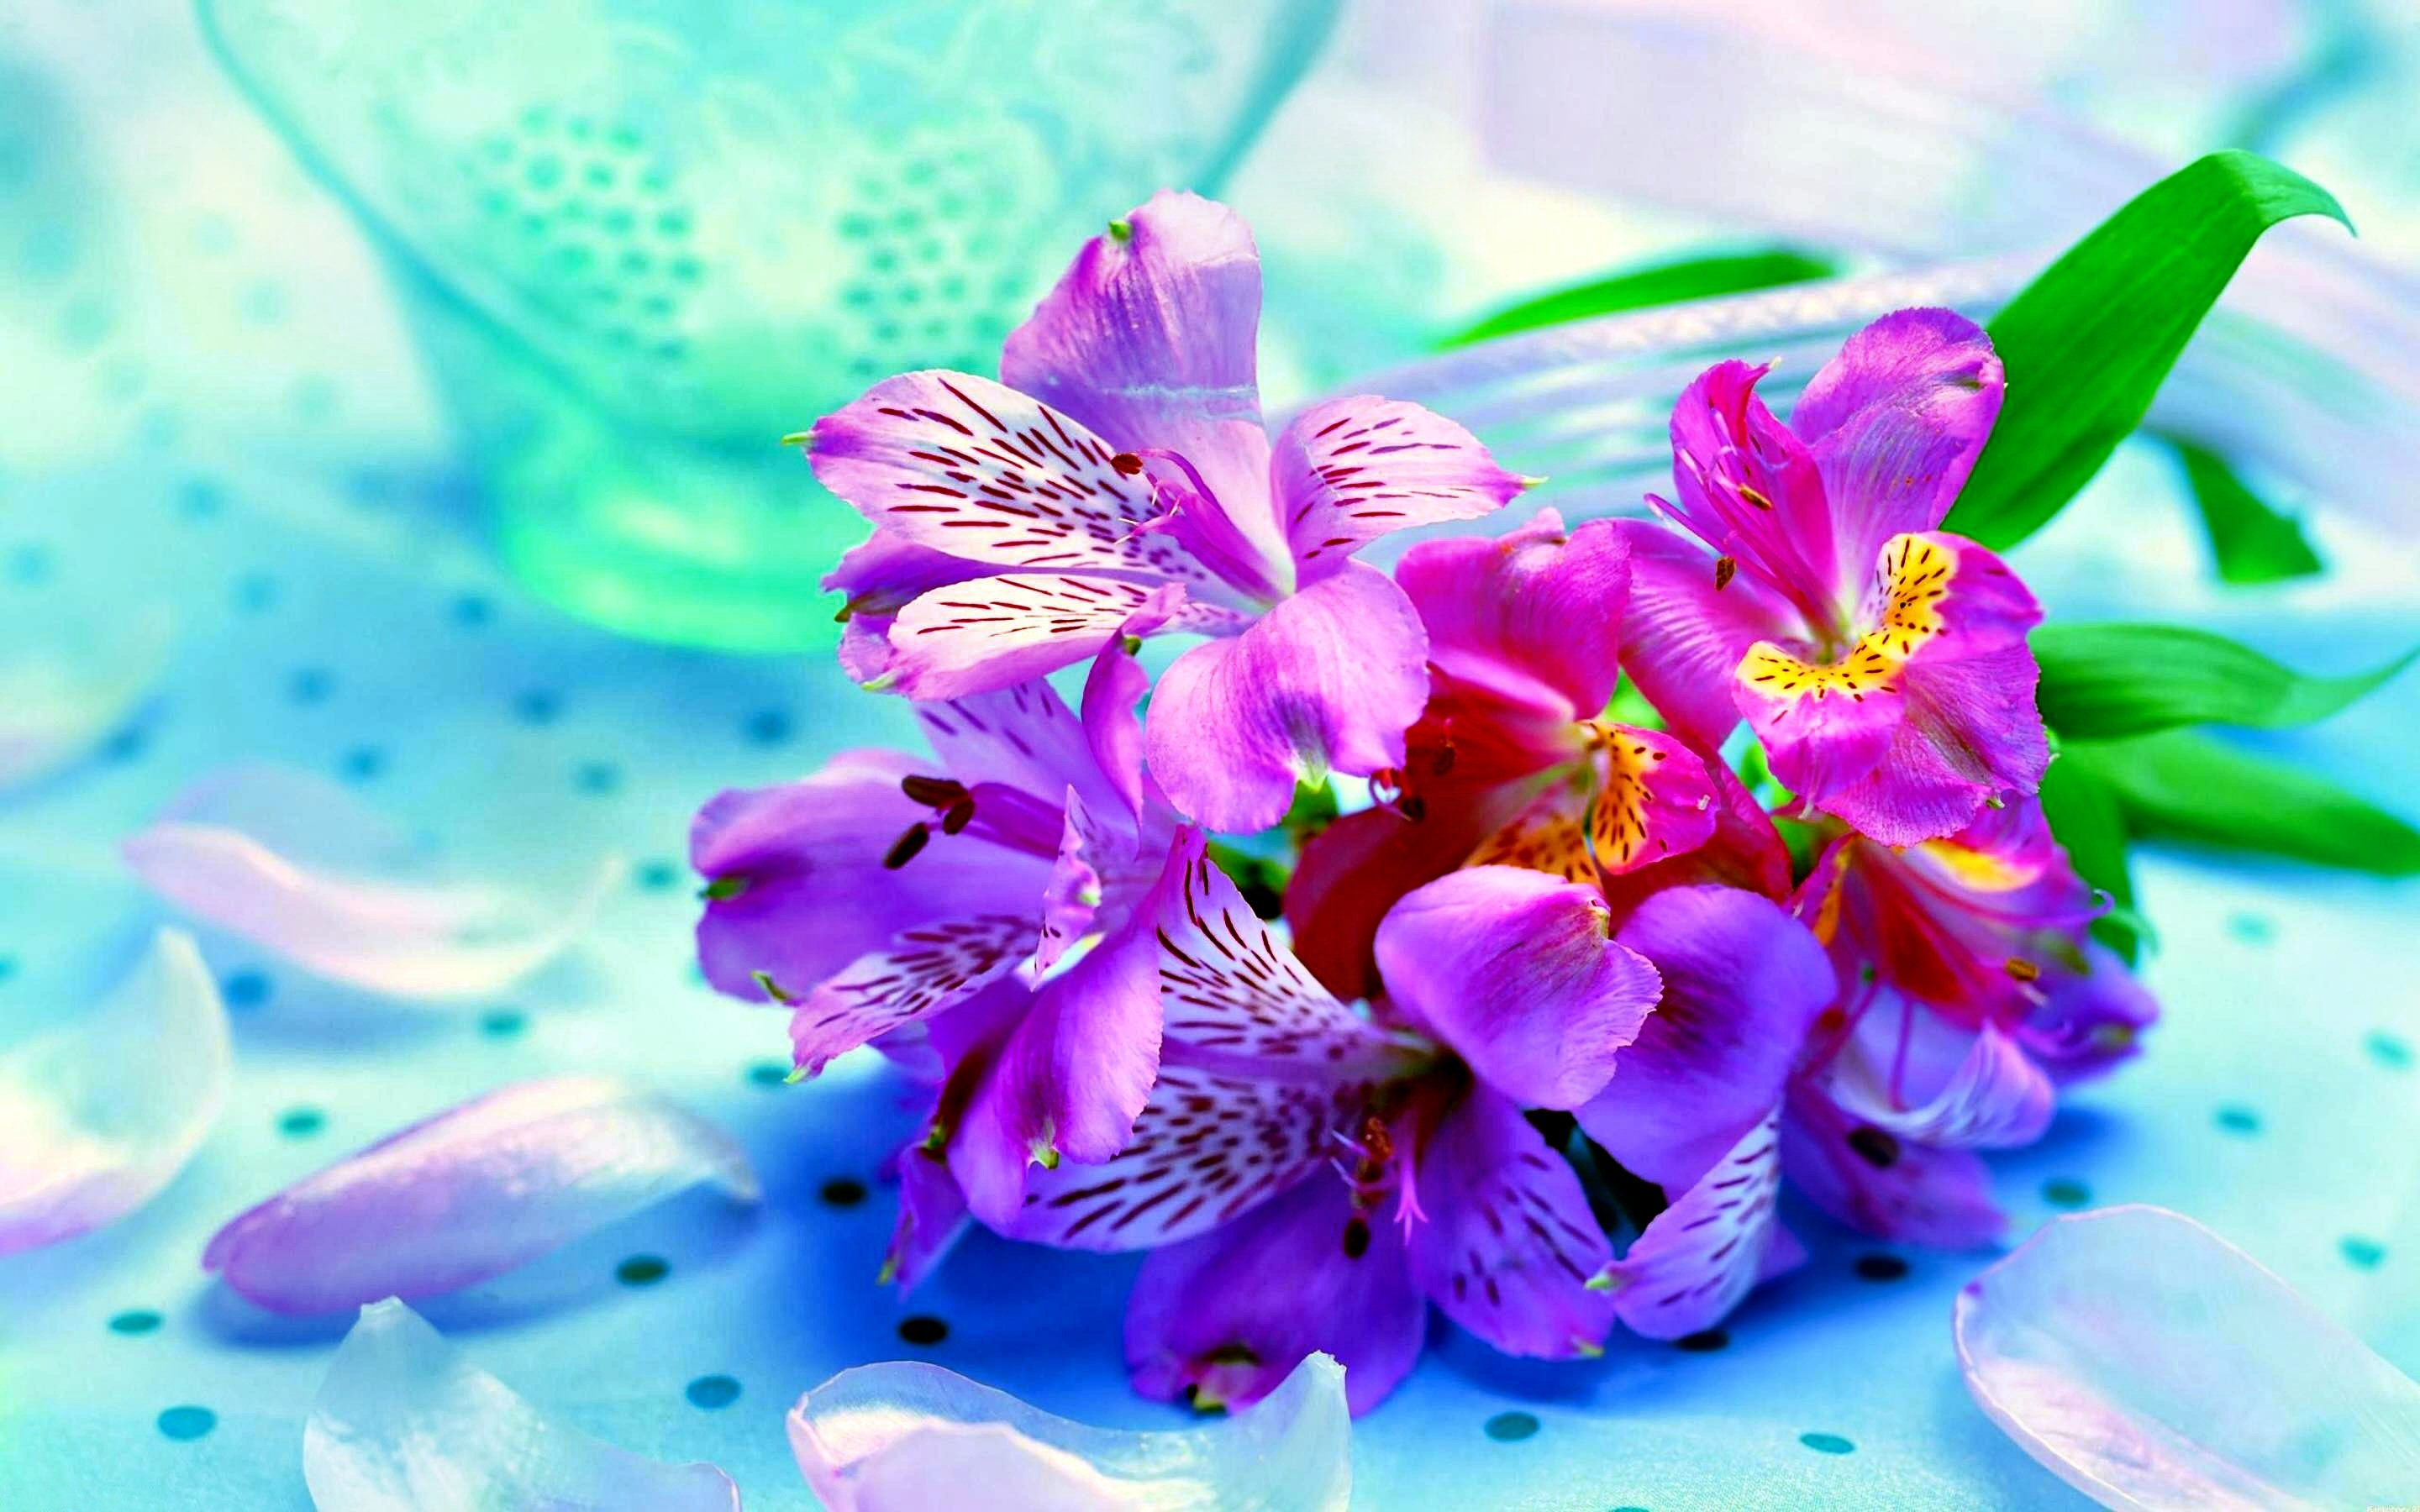 HD Flower, April 15, 2016 | Wallpapers PC Gallery, 459.21 Kb